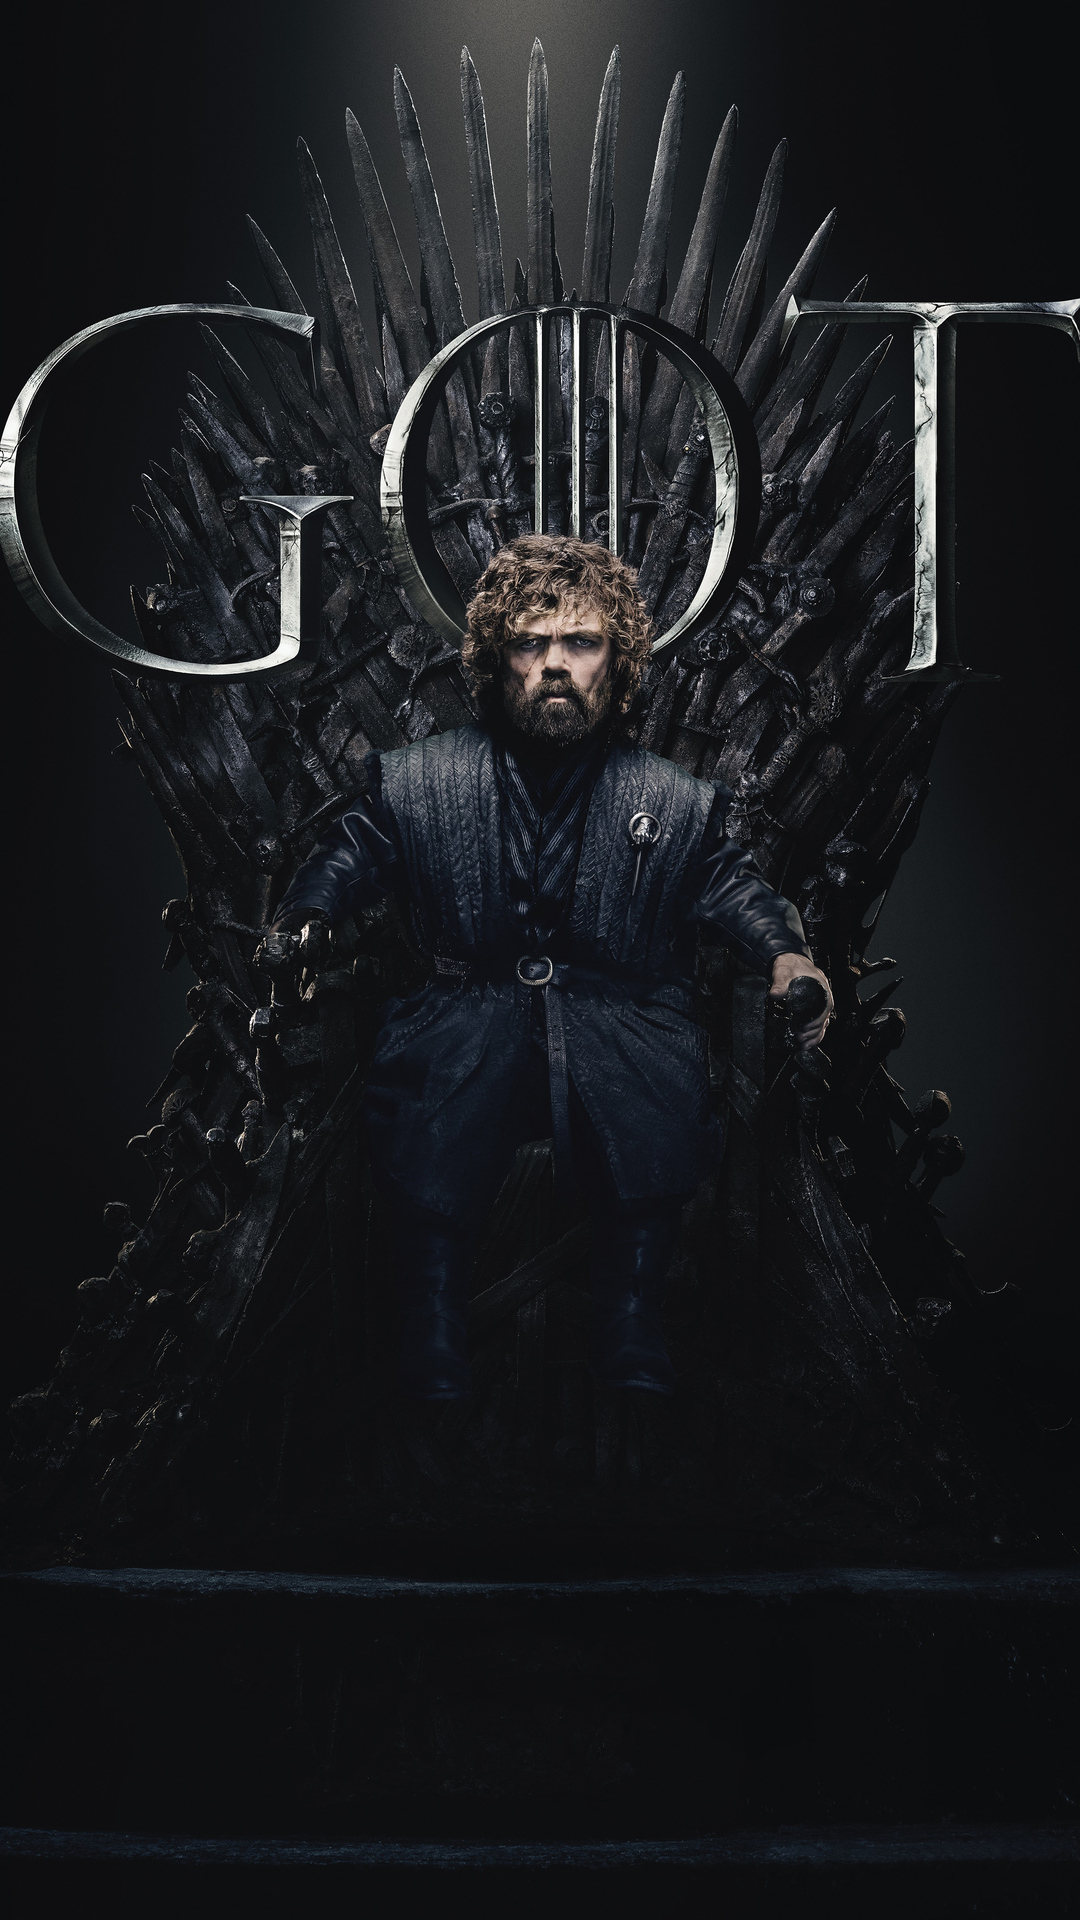 1080x1920 Tyrion Lannister Game Of Thrones Season 8 Poster